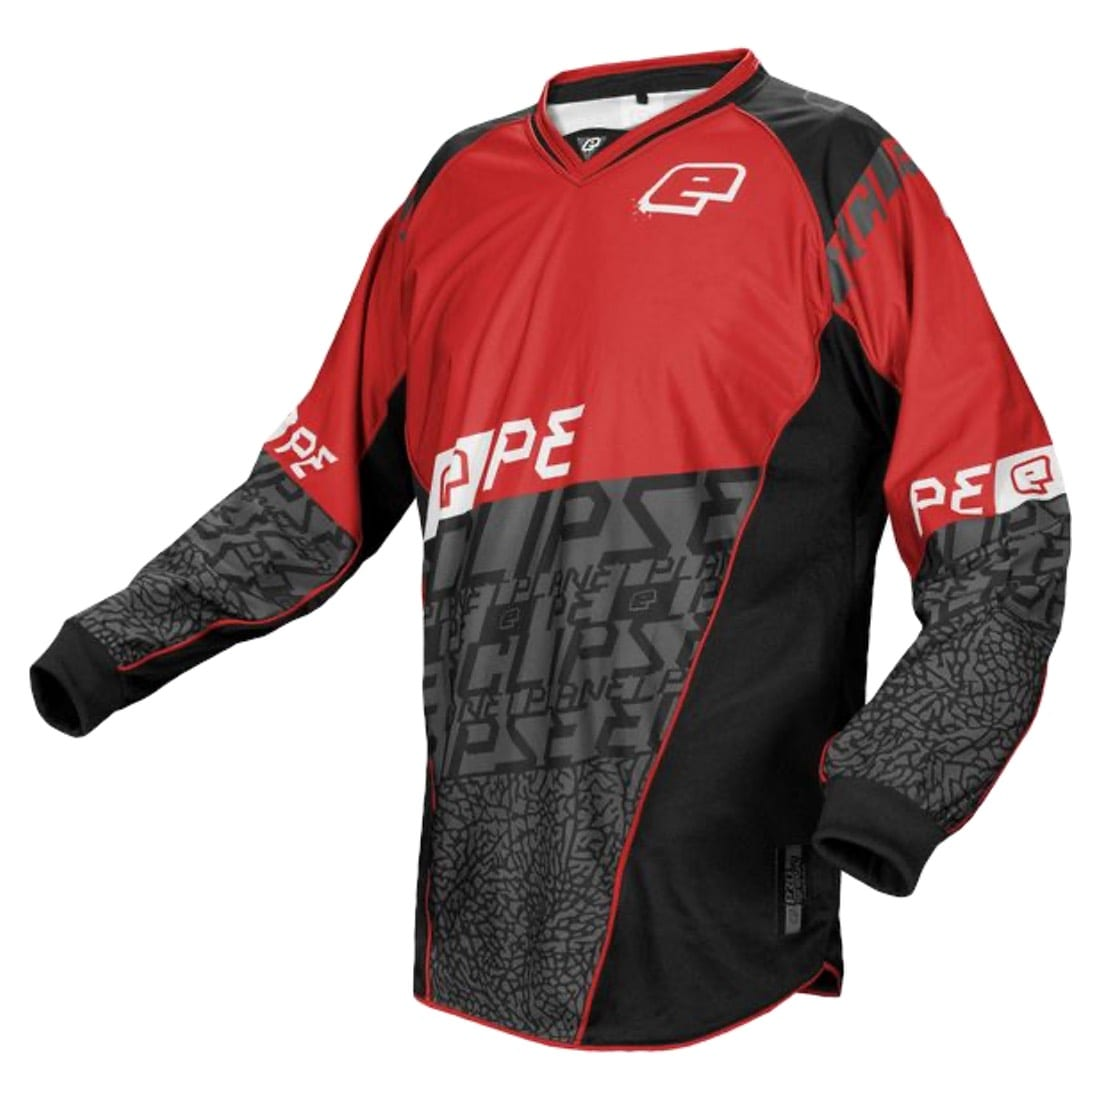 Planet Eclipse FANTM Jersey Red